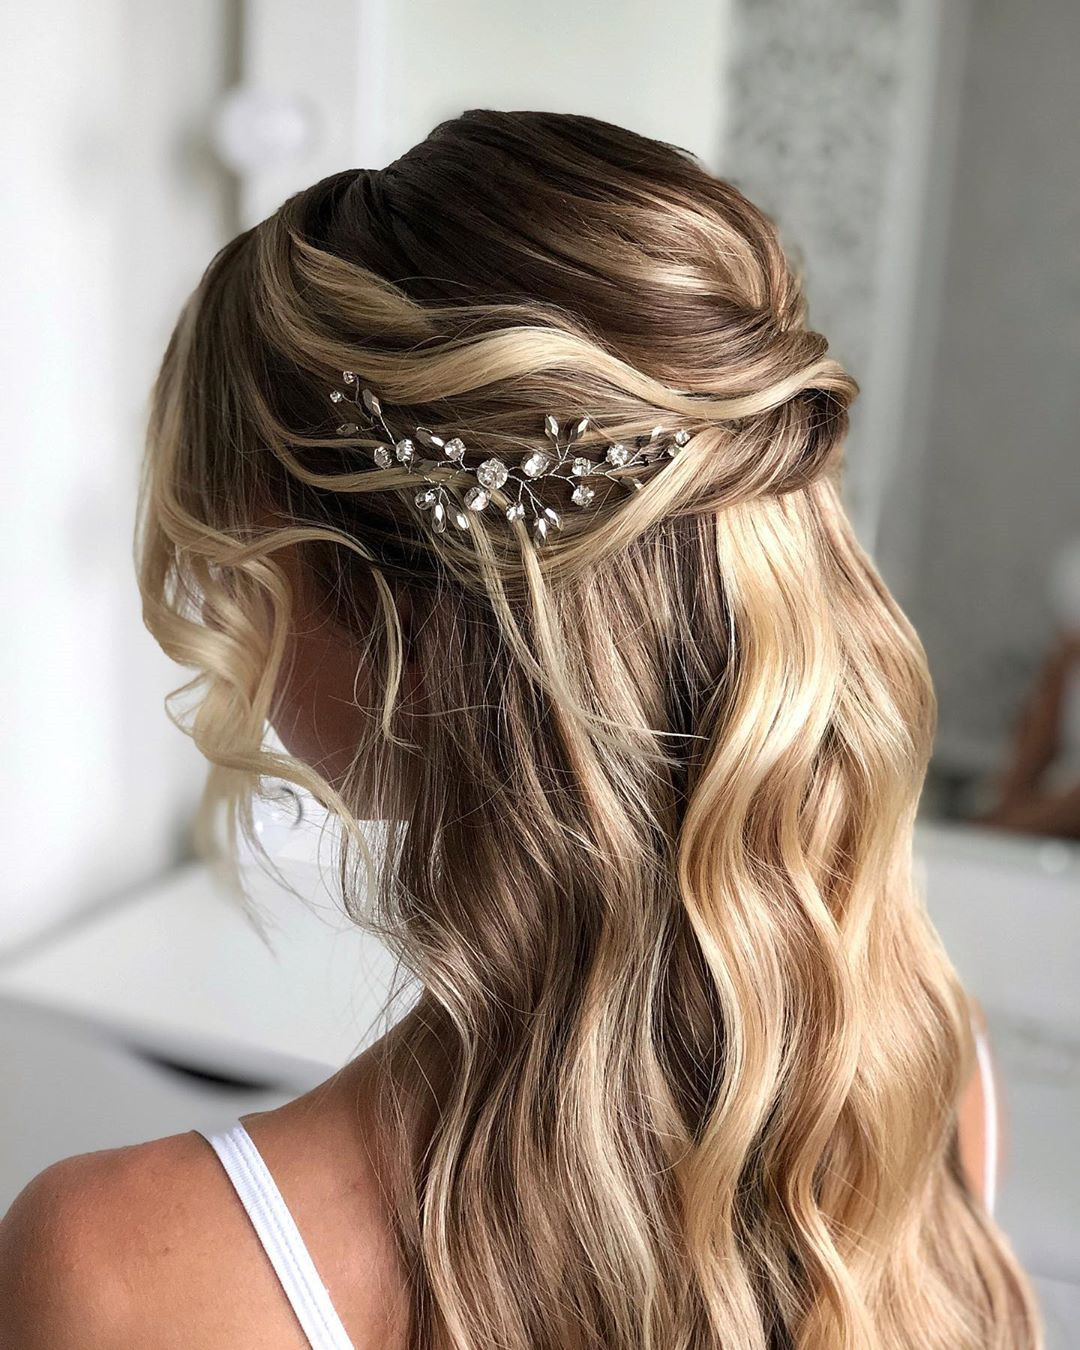 Looking for the prom hairstyle? Curly hair or straight hair? Short hair or long hair? Fashion or romance? We have found 25 stunning prom hairstyles that There is always one for you. #PromHair #PromHairstyle #HairStyles